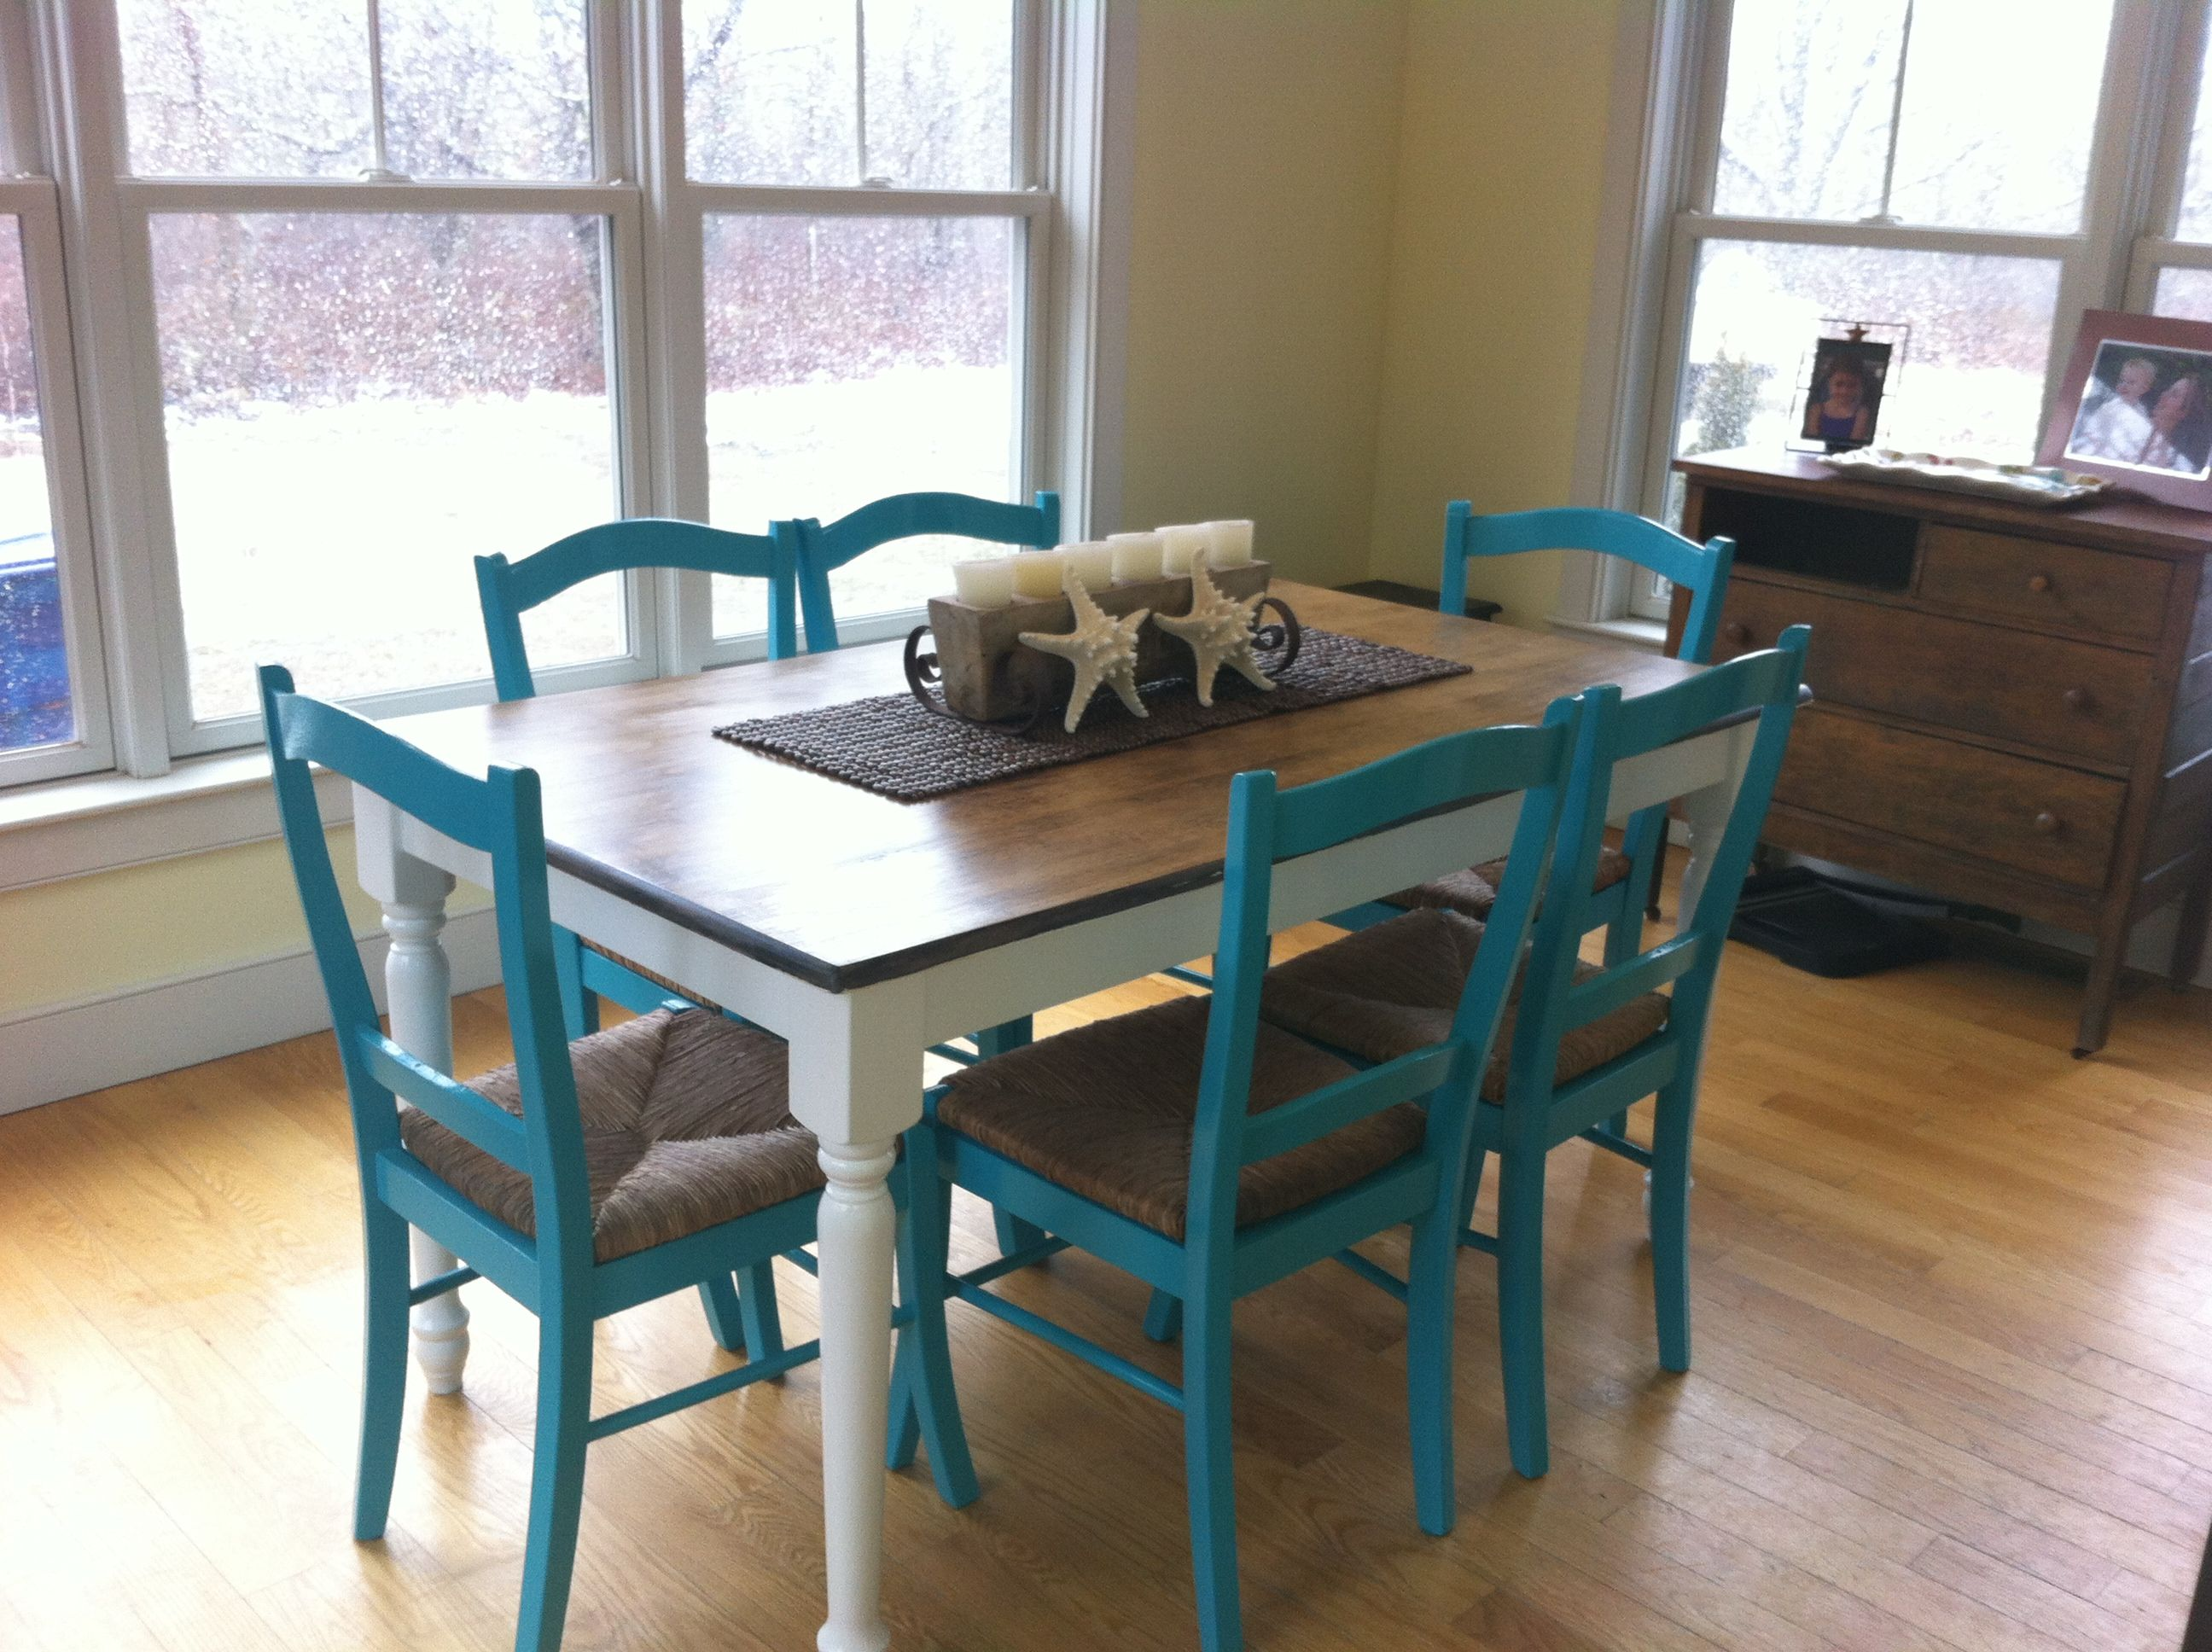 Refinish dining room table with beach theme. The table used ...